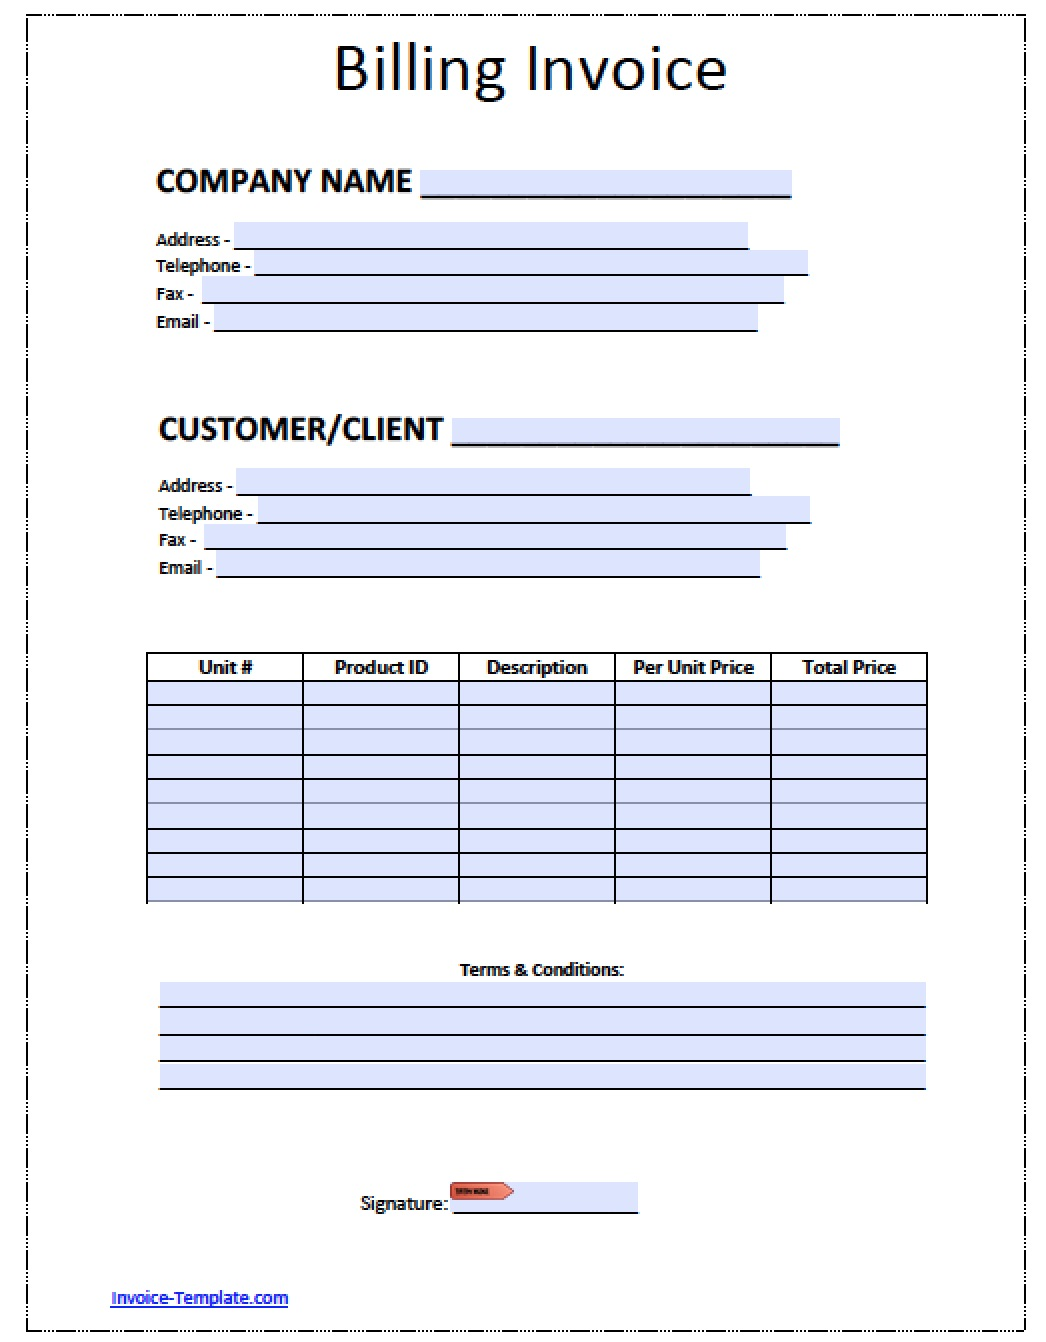 Billing invoice template download free blank invoice for How to create template in php